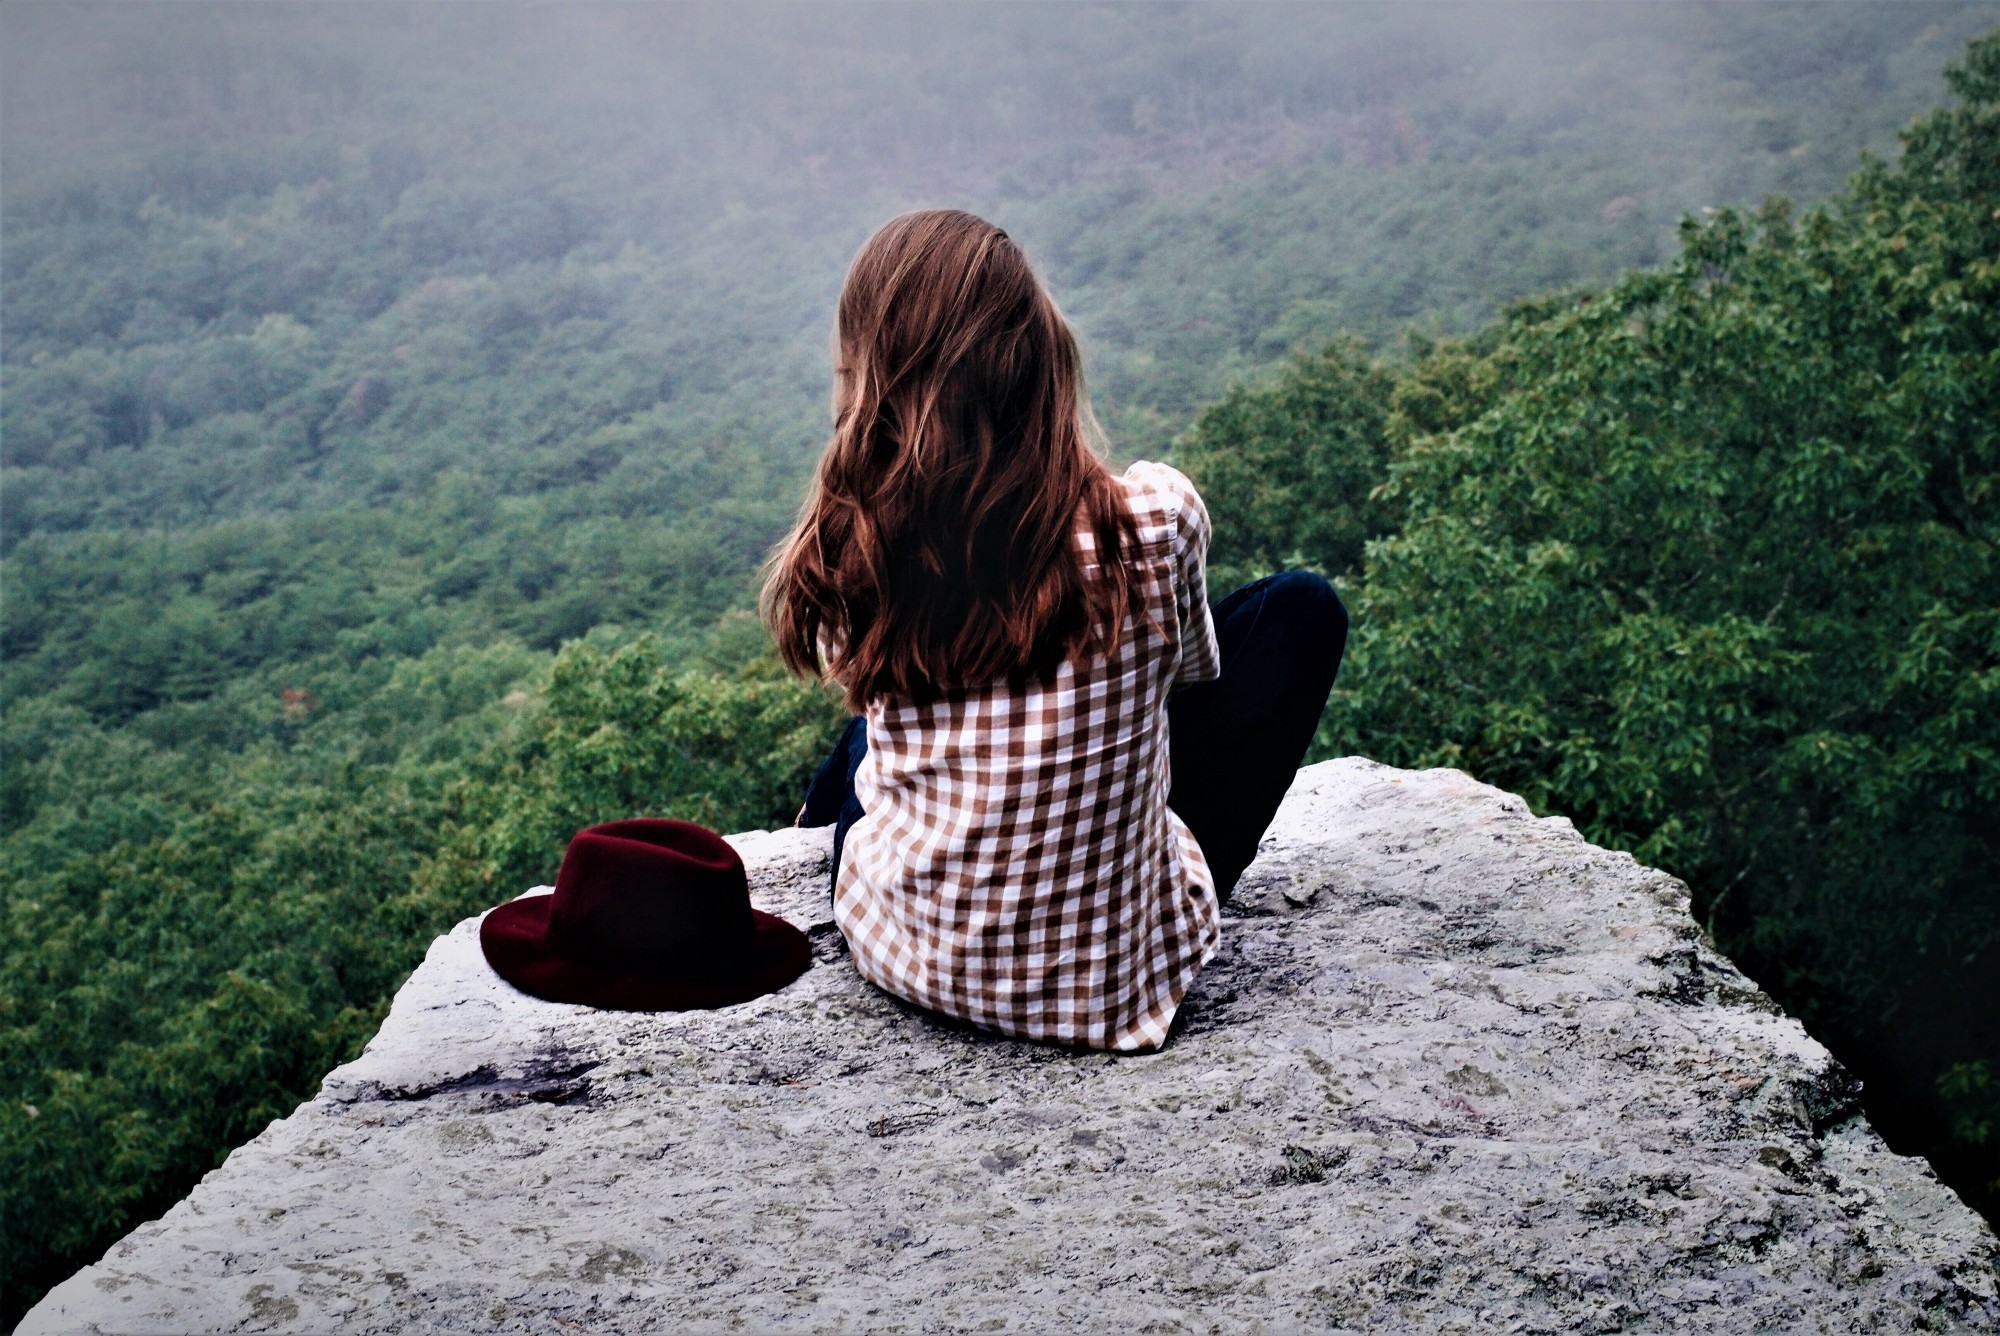 girl with long brown hair wearing red and white checked top sitting on boulder looking out over green valley